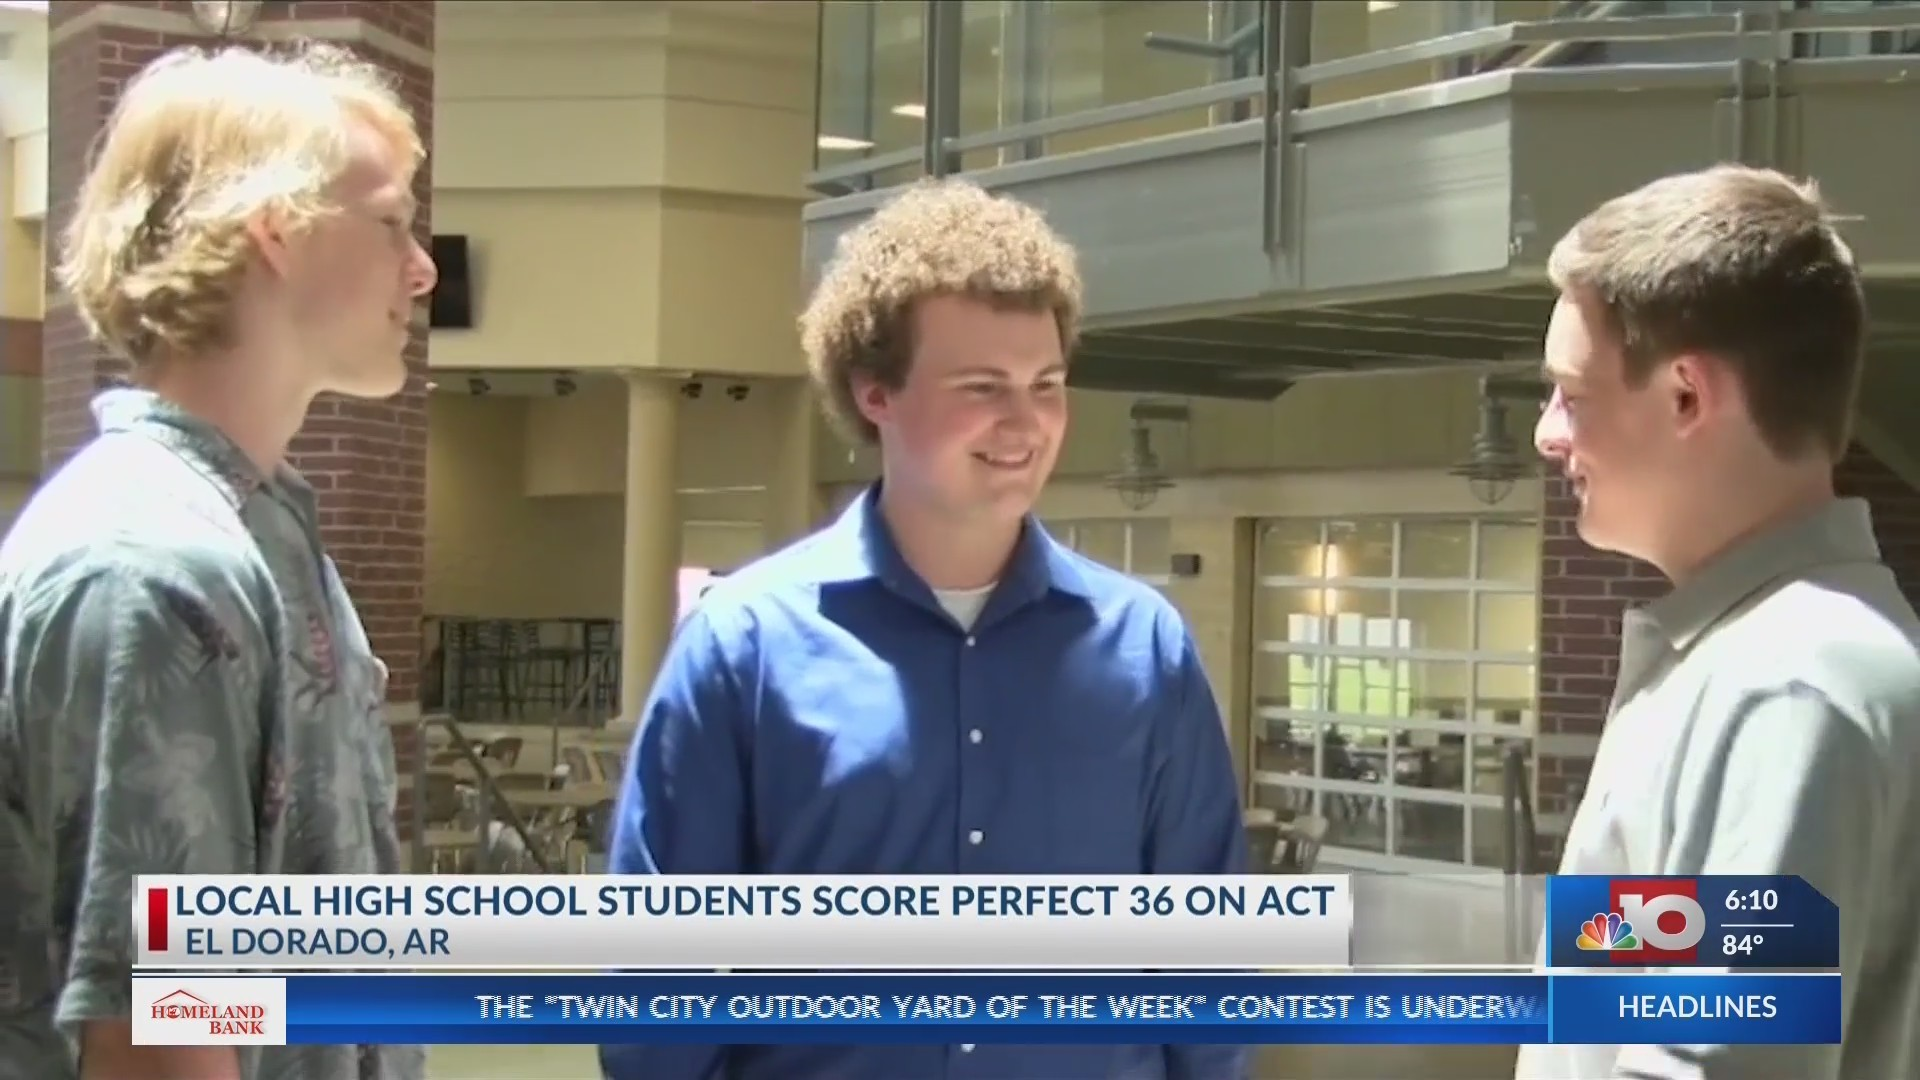 El Dorado High School students receive perfect score on the ACT